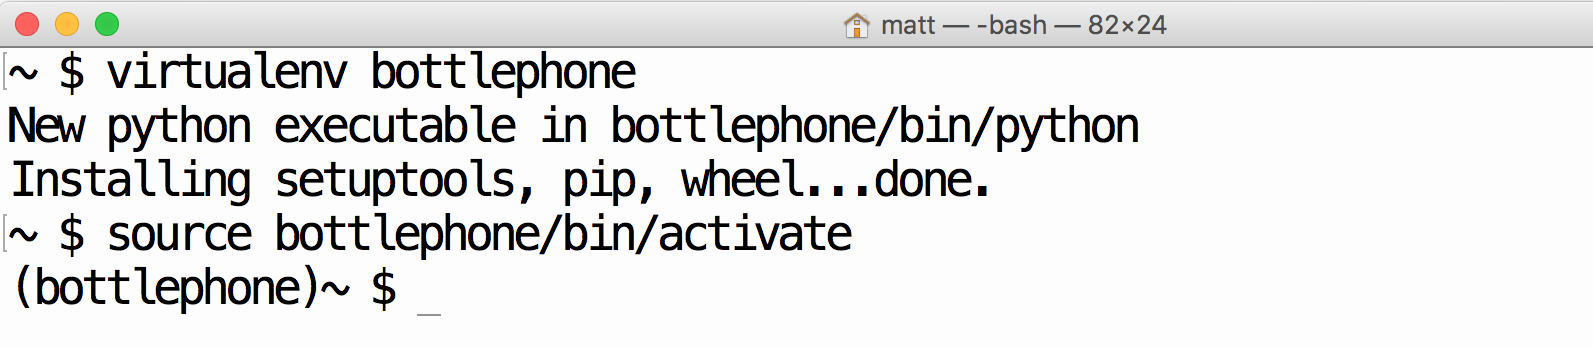 bottlephone-virtualenv.png